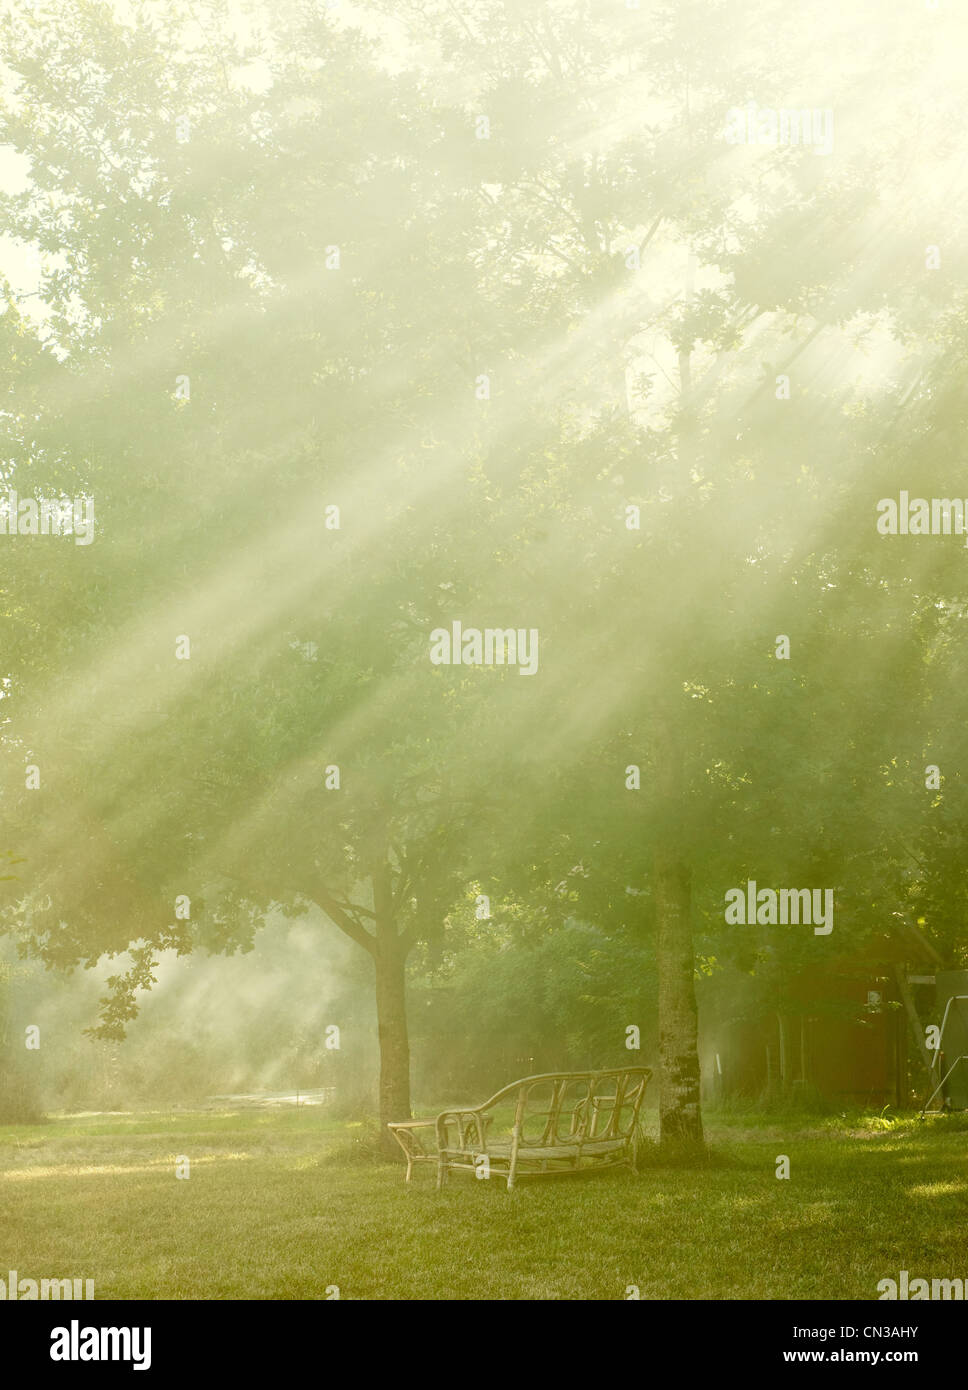 Outdoor furniture and trees in sunbeams - Stock Image